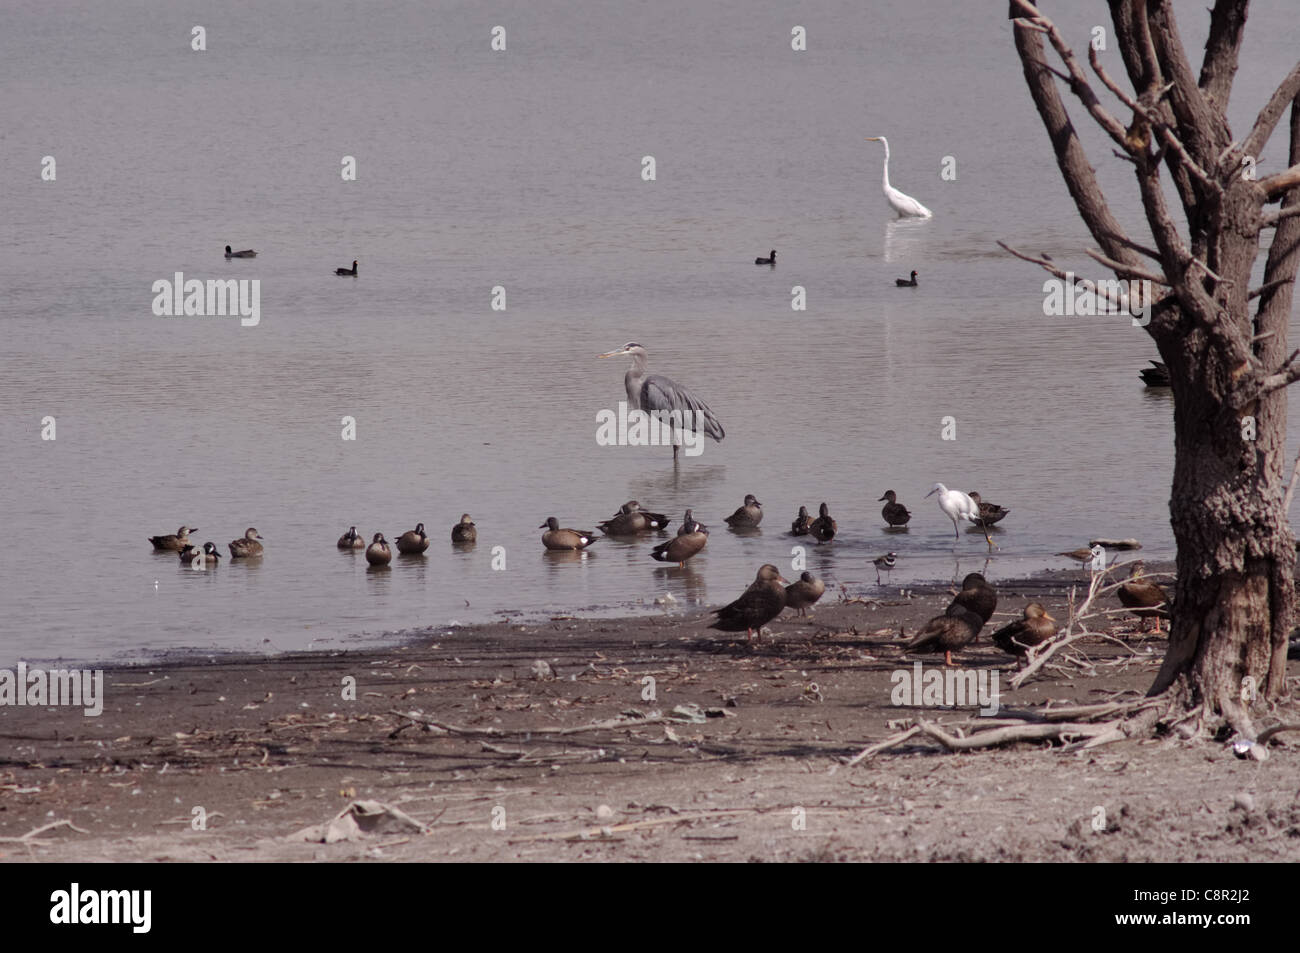 Group of migratory birds, mainly ducks and herons, in a lake in central Mexico during winter - Stock Image